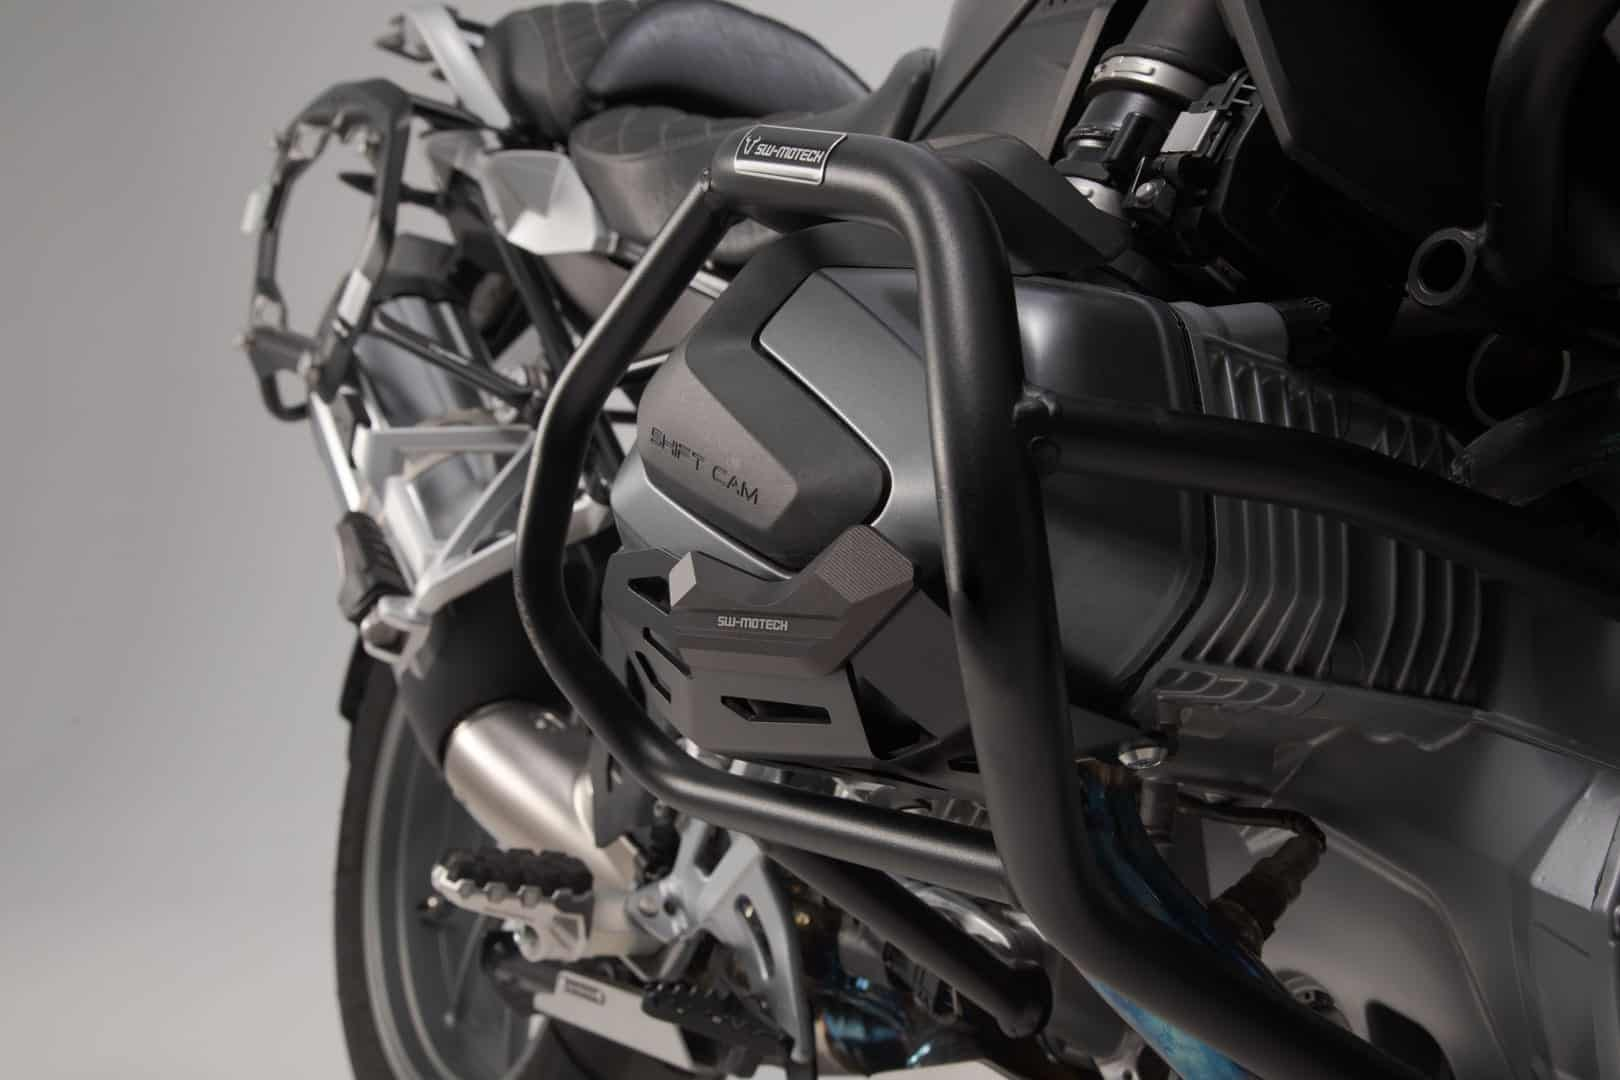 SW-MOTECH-Cylinder-Guards-for-BMW-R1250GS-Adventure-19-20-R1250R-19-20-R1250RS-19-20-R1250RT-19-20-4